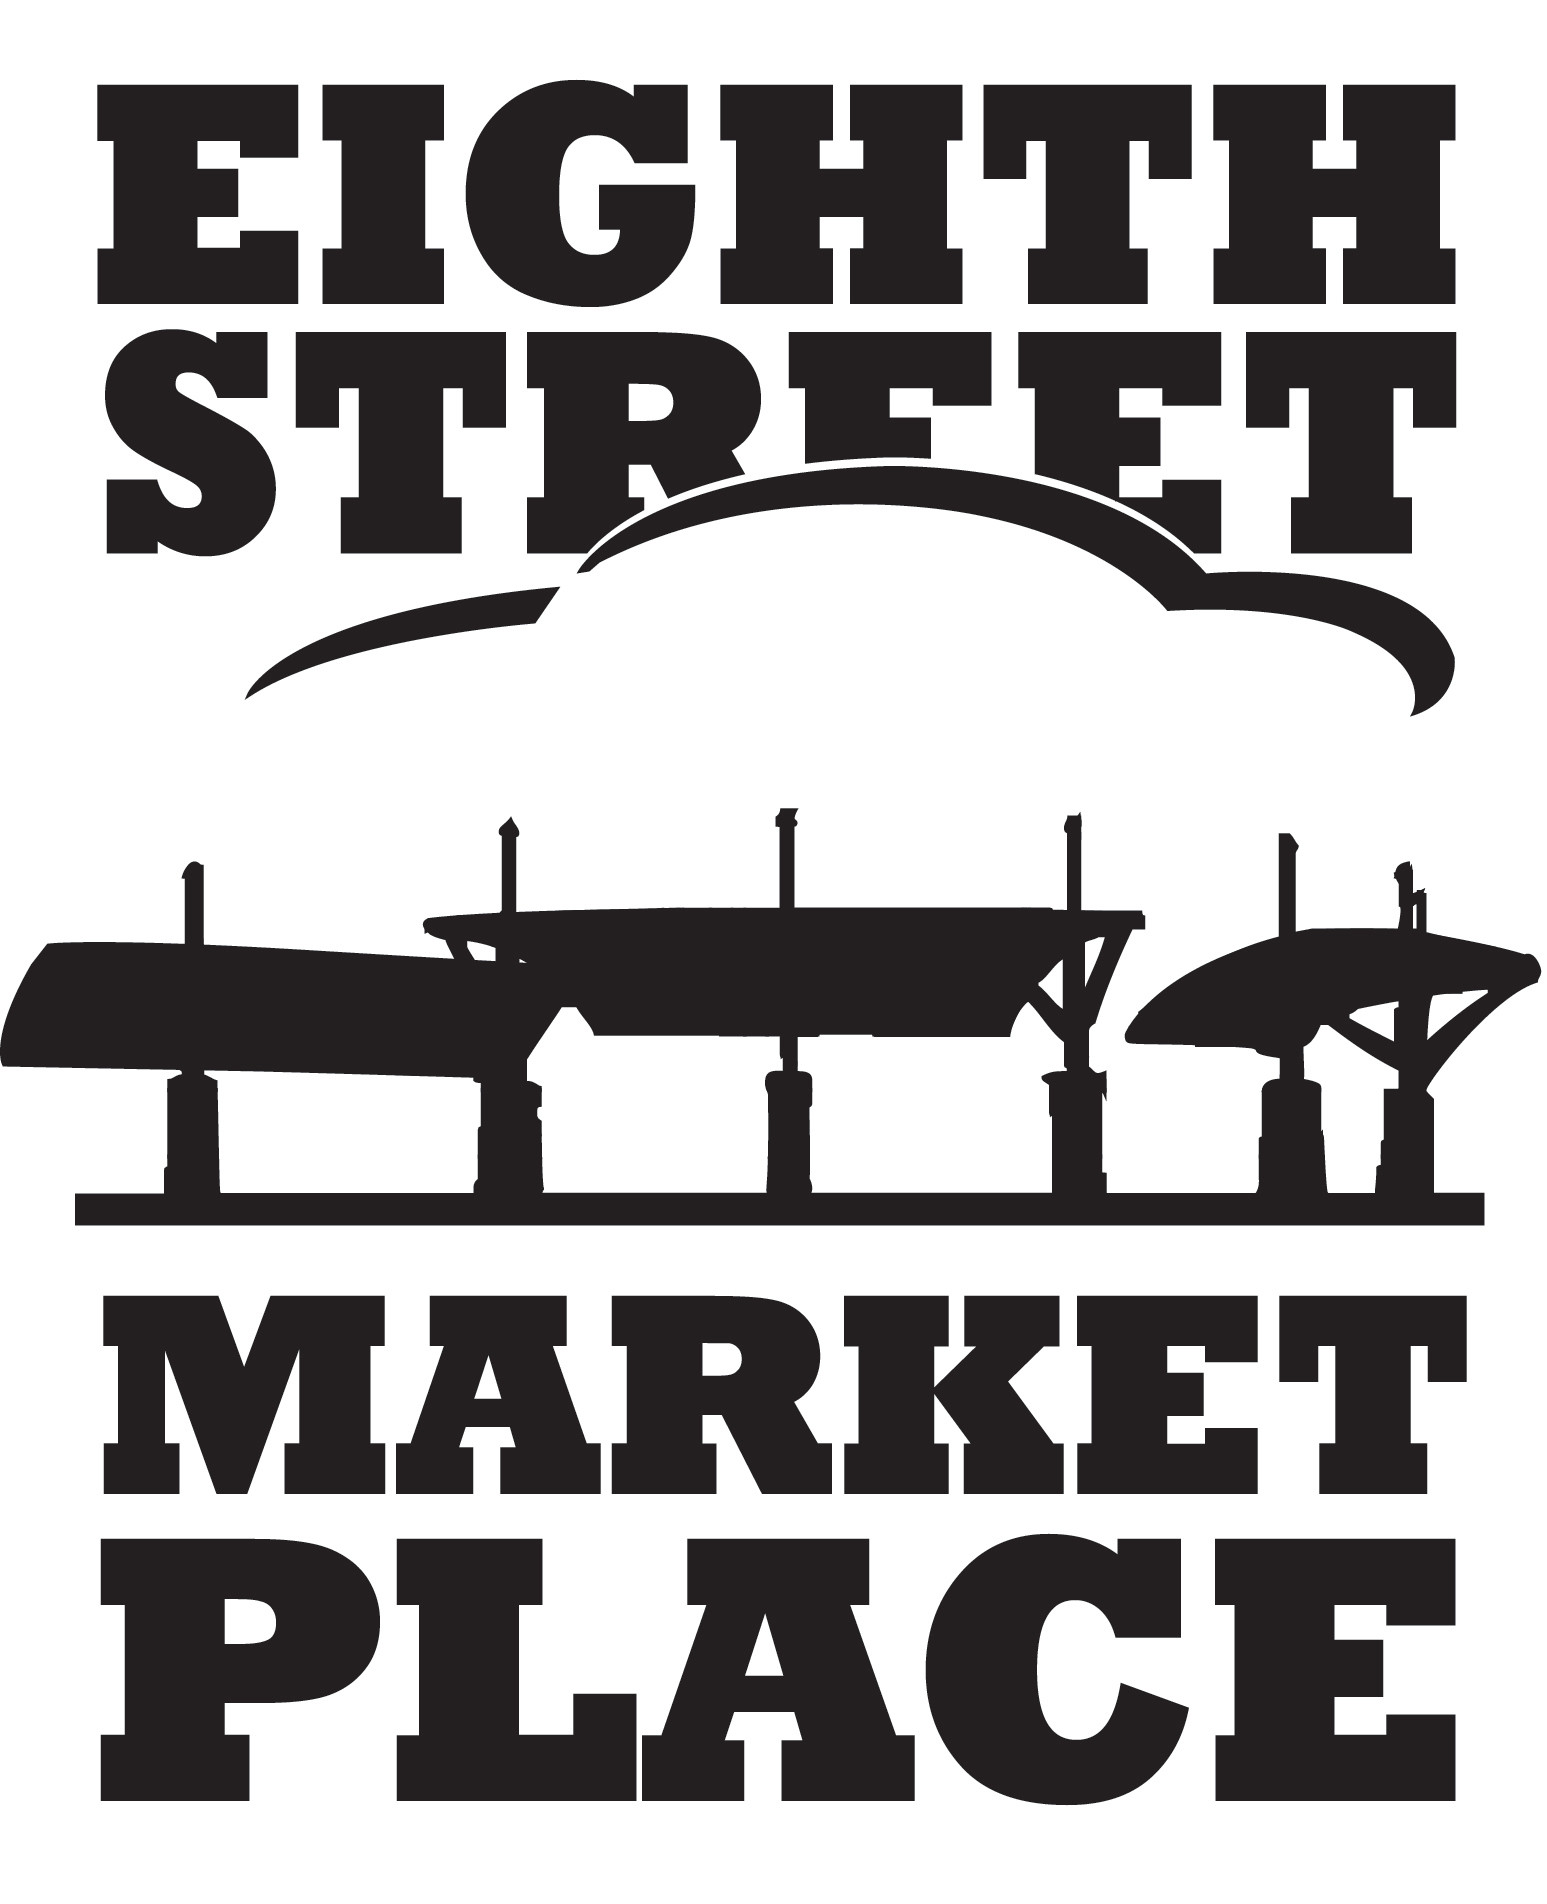 8th Street Market Place logo